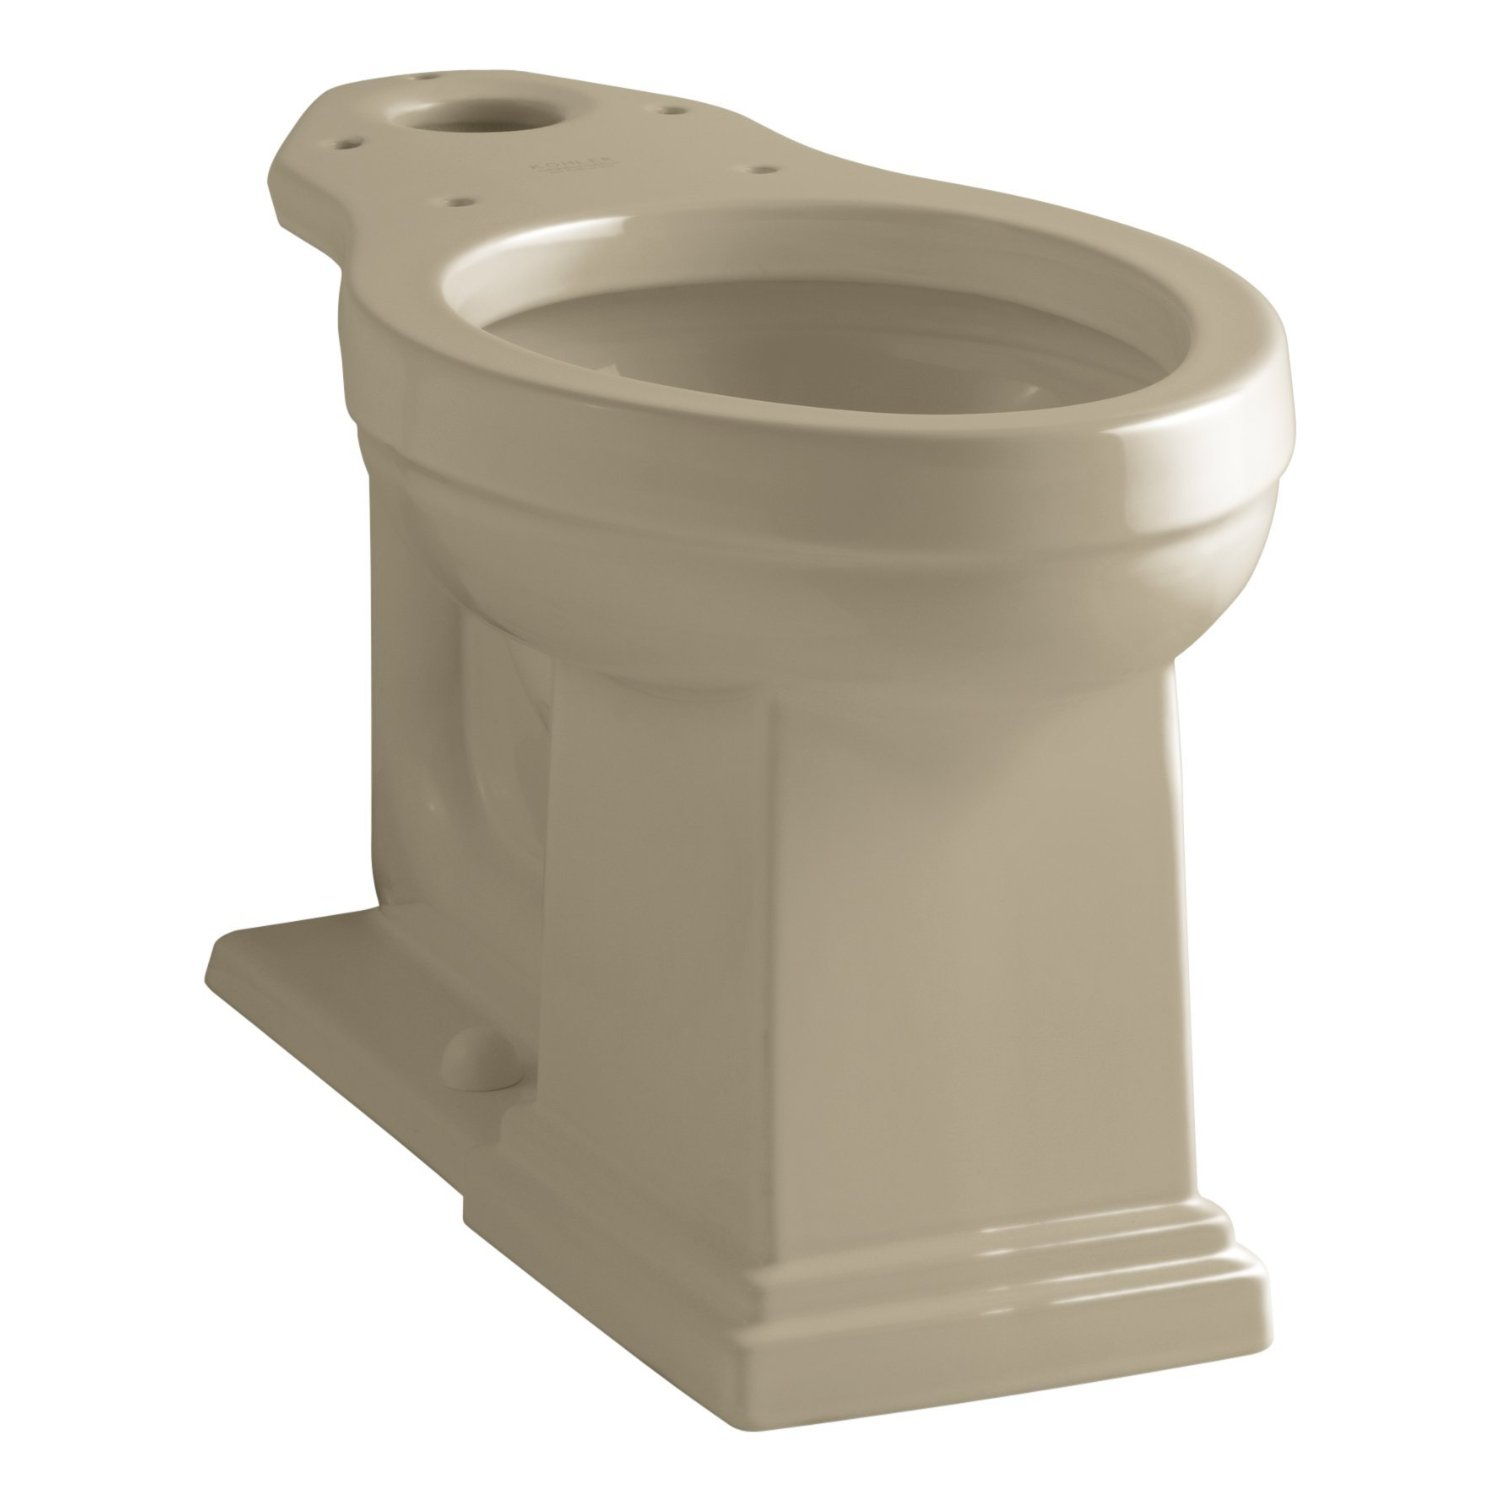 Kohler K 4799 58 Tresham Comfort Height Elongated Toilet